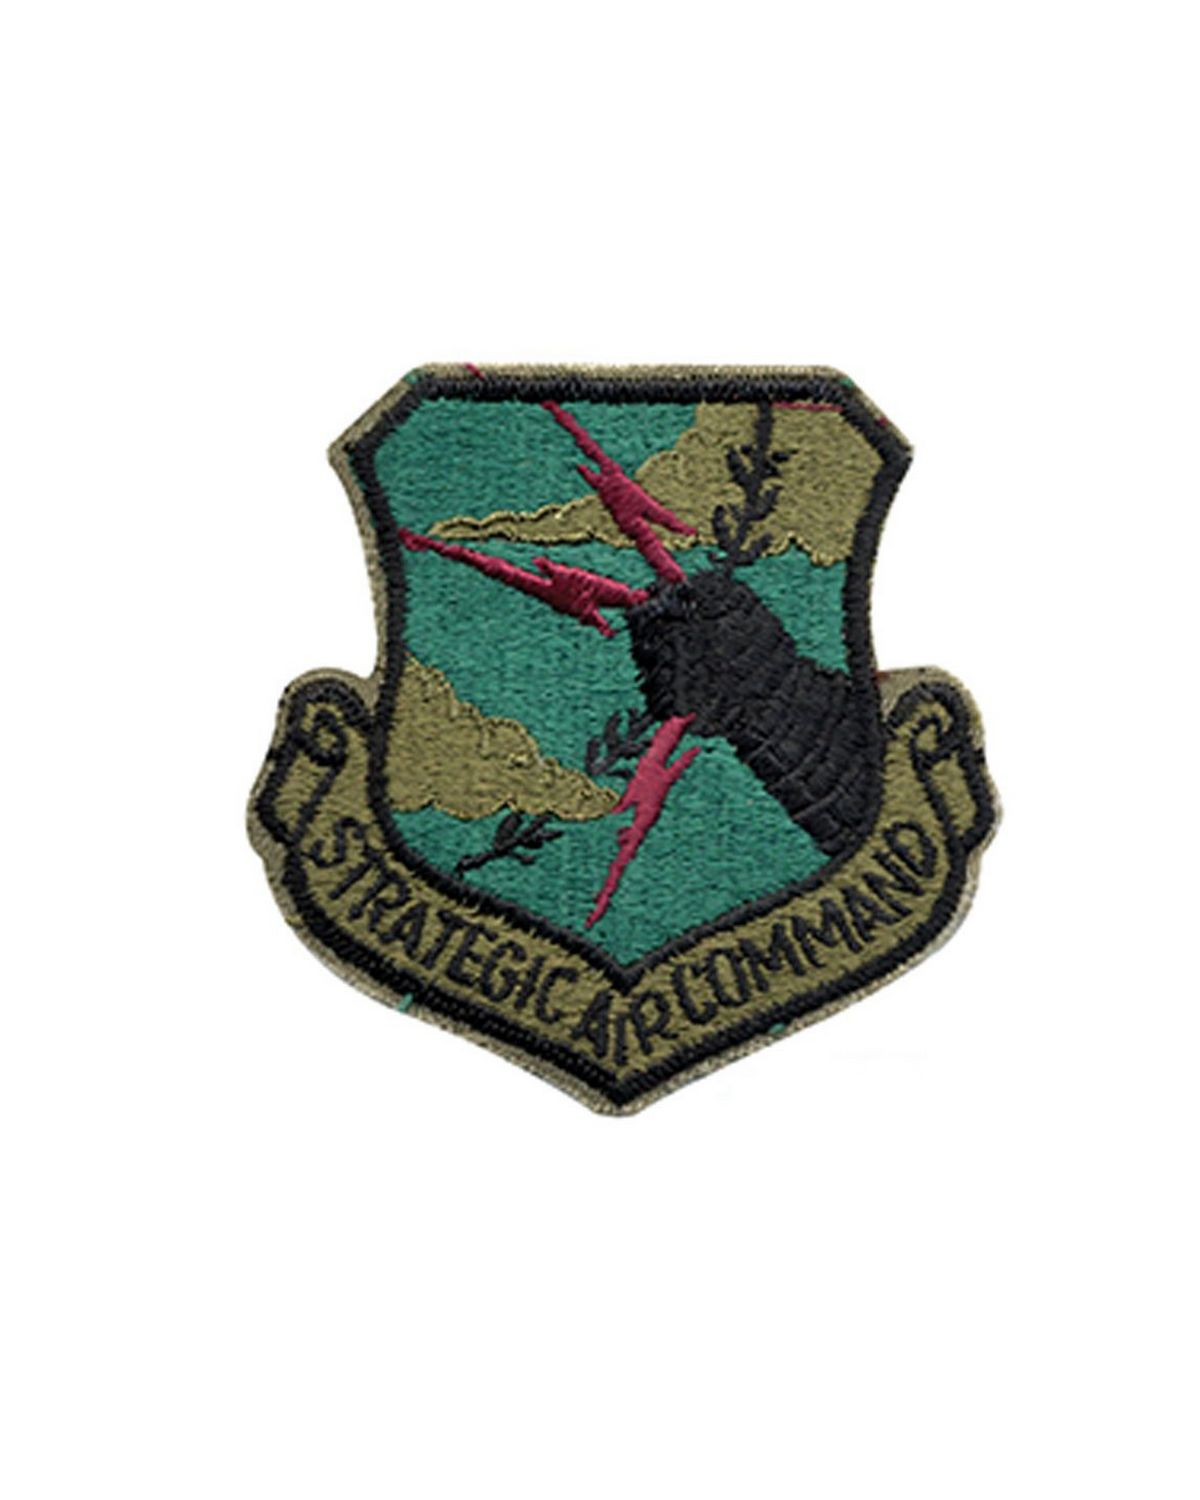 Rothco 72104 Strategic Air Command Patch - Subdued - 3 inches x 3 inches 72104